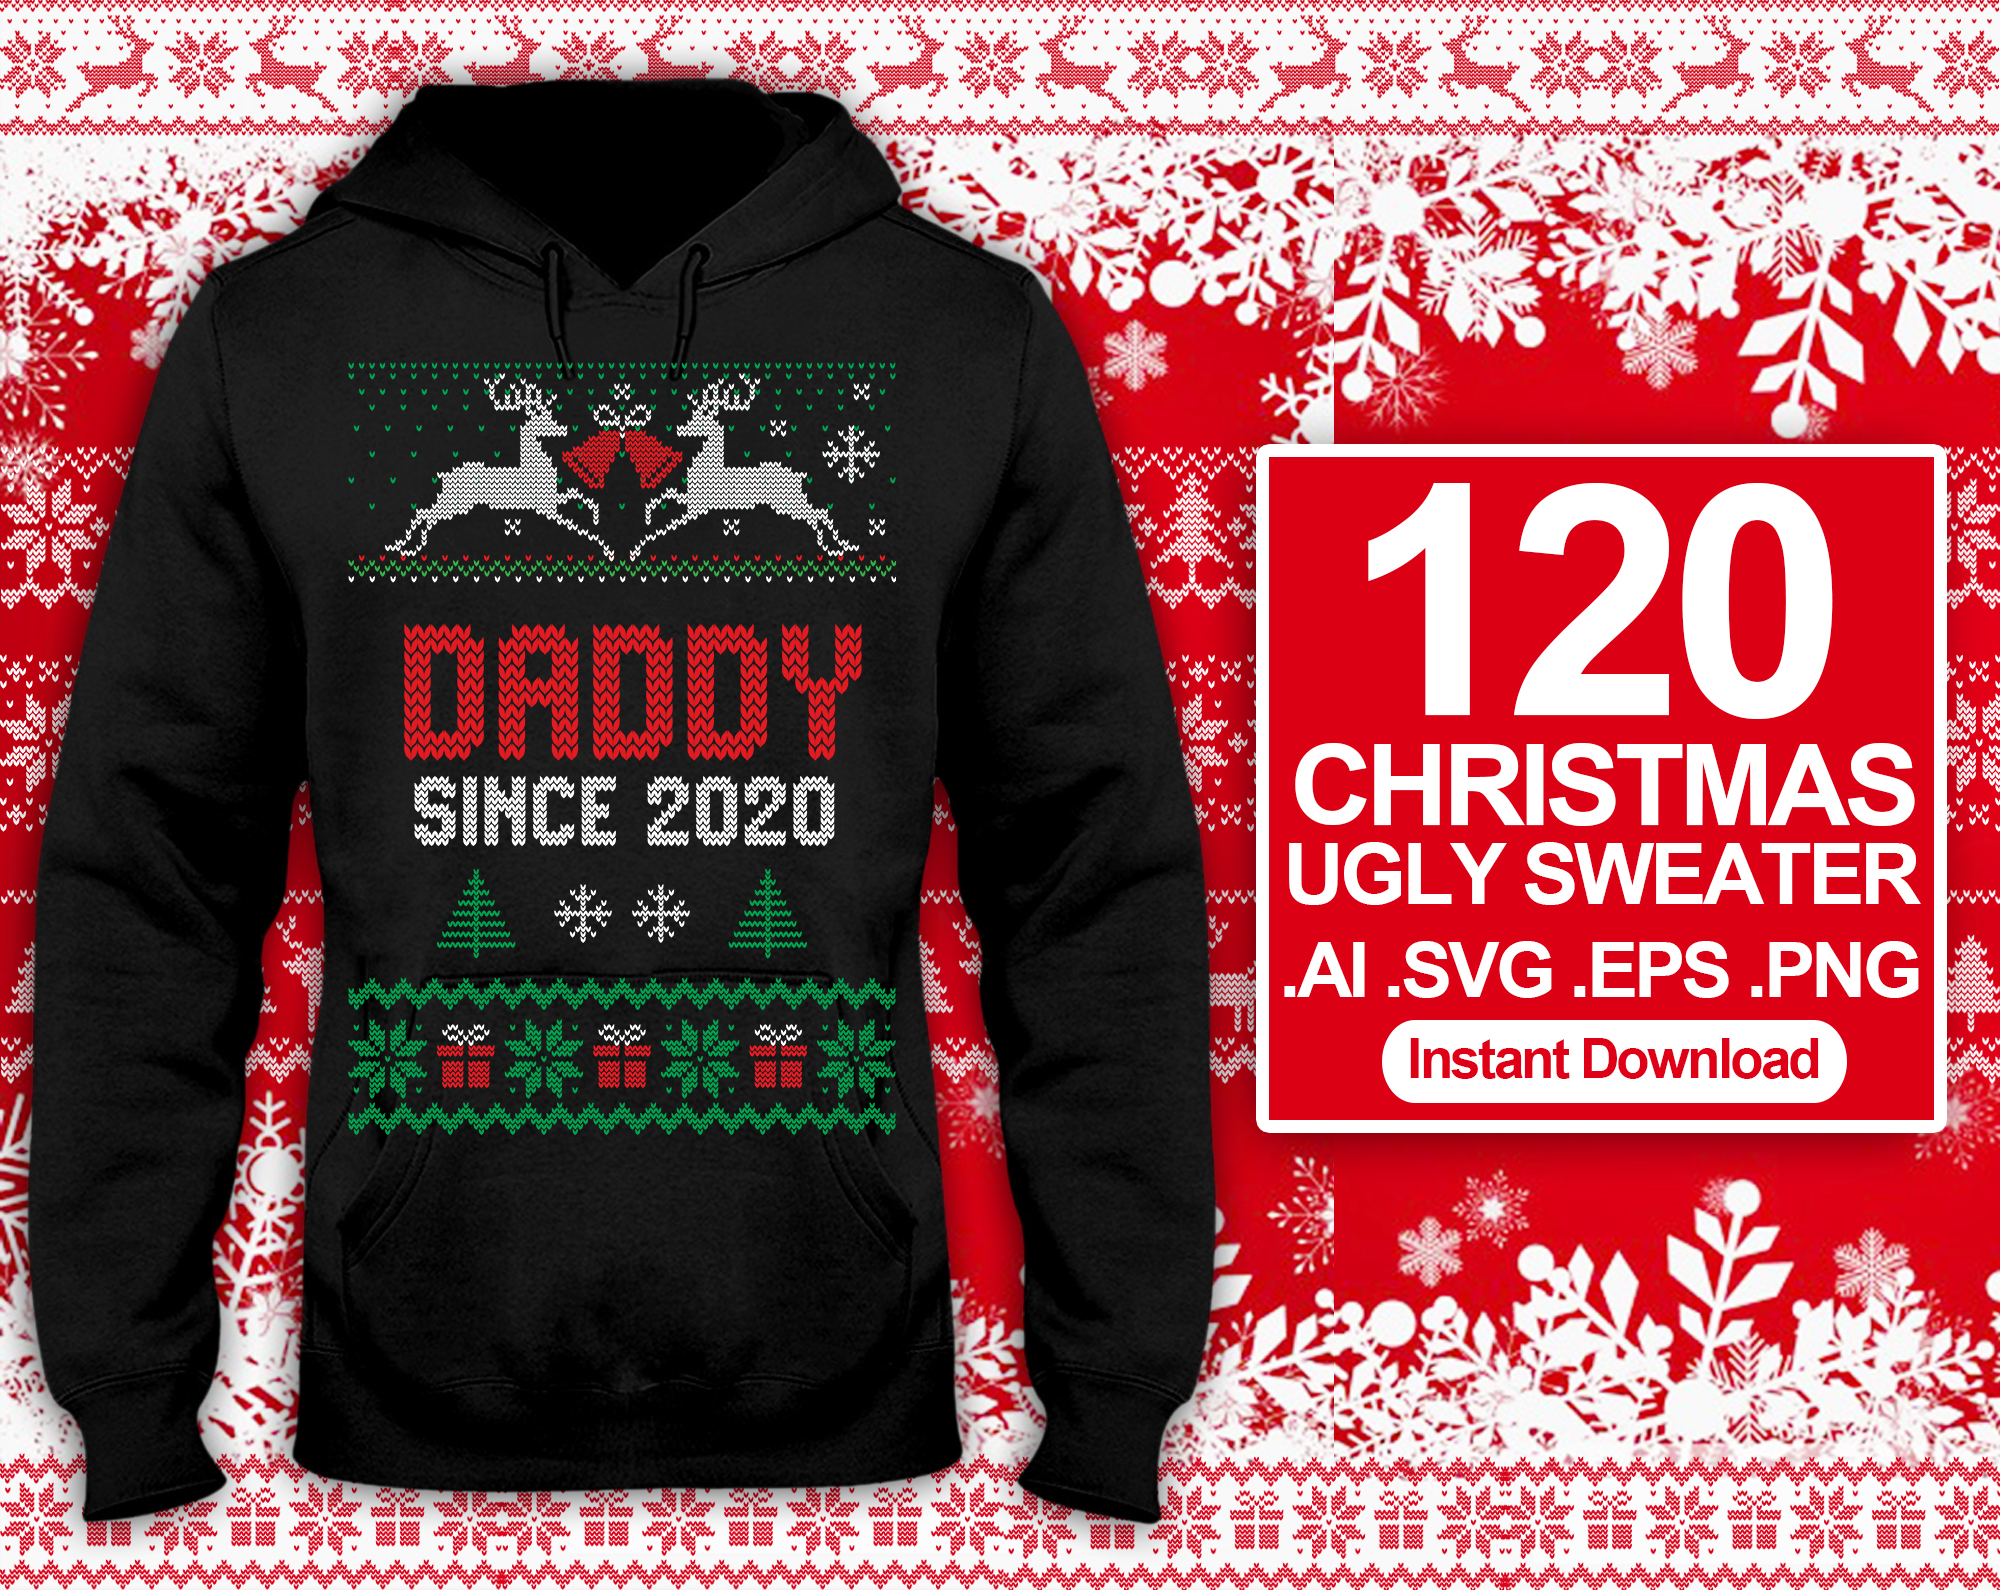 Send 120 Ugly Sweater Christmas T-shirt Design SVG Bundles